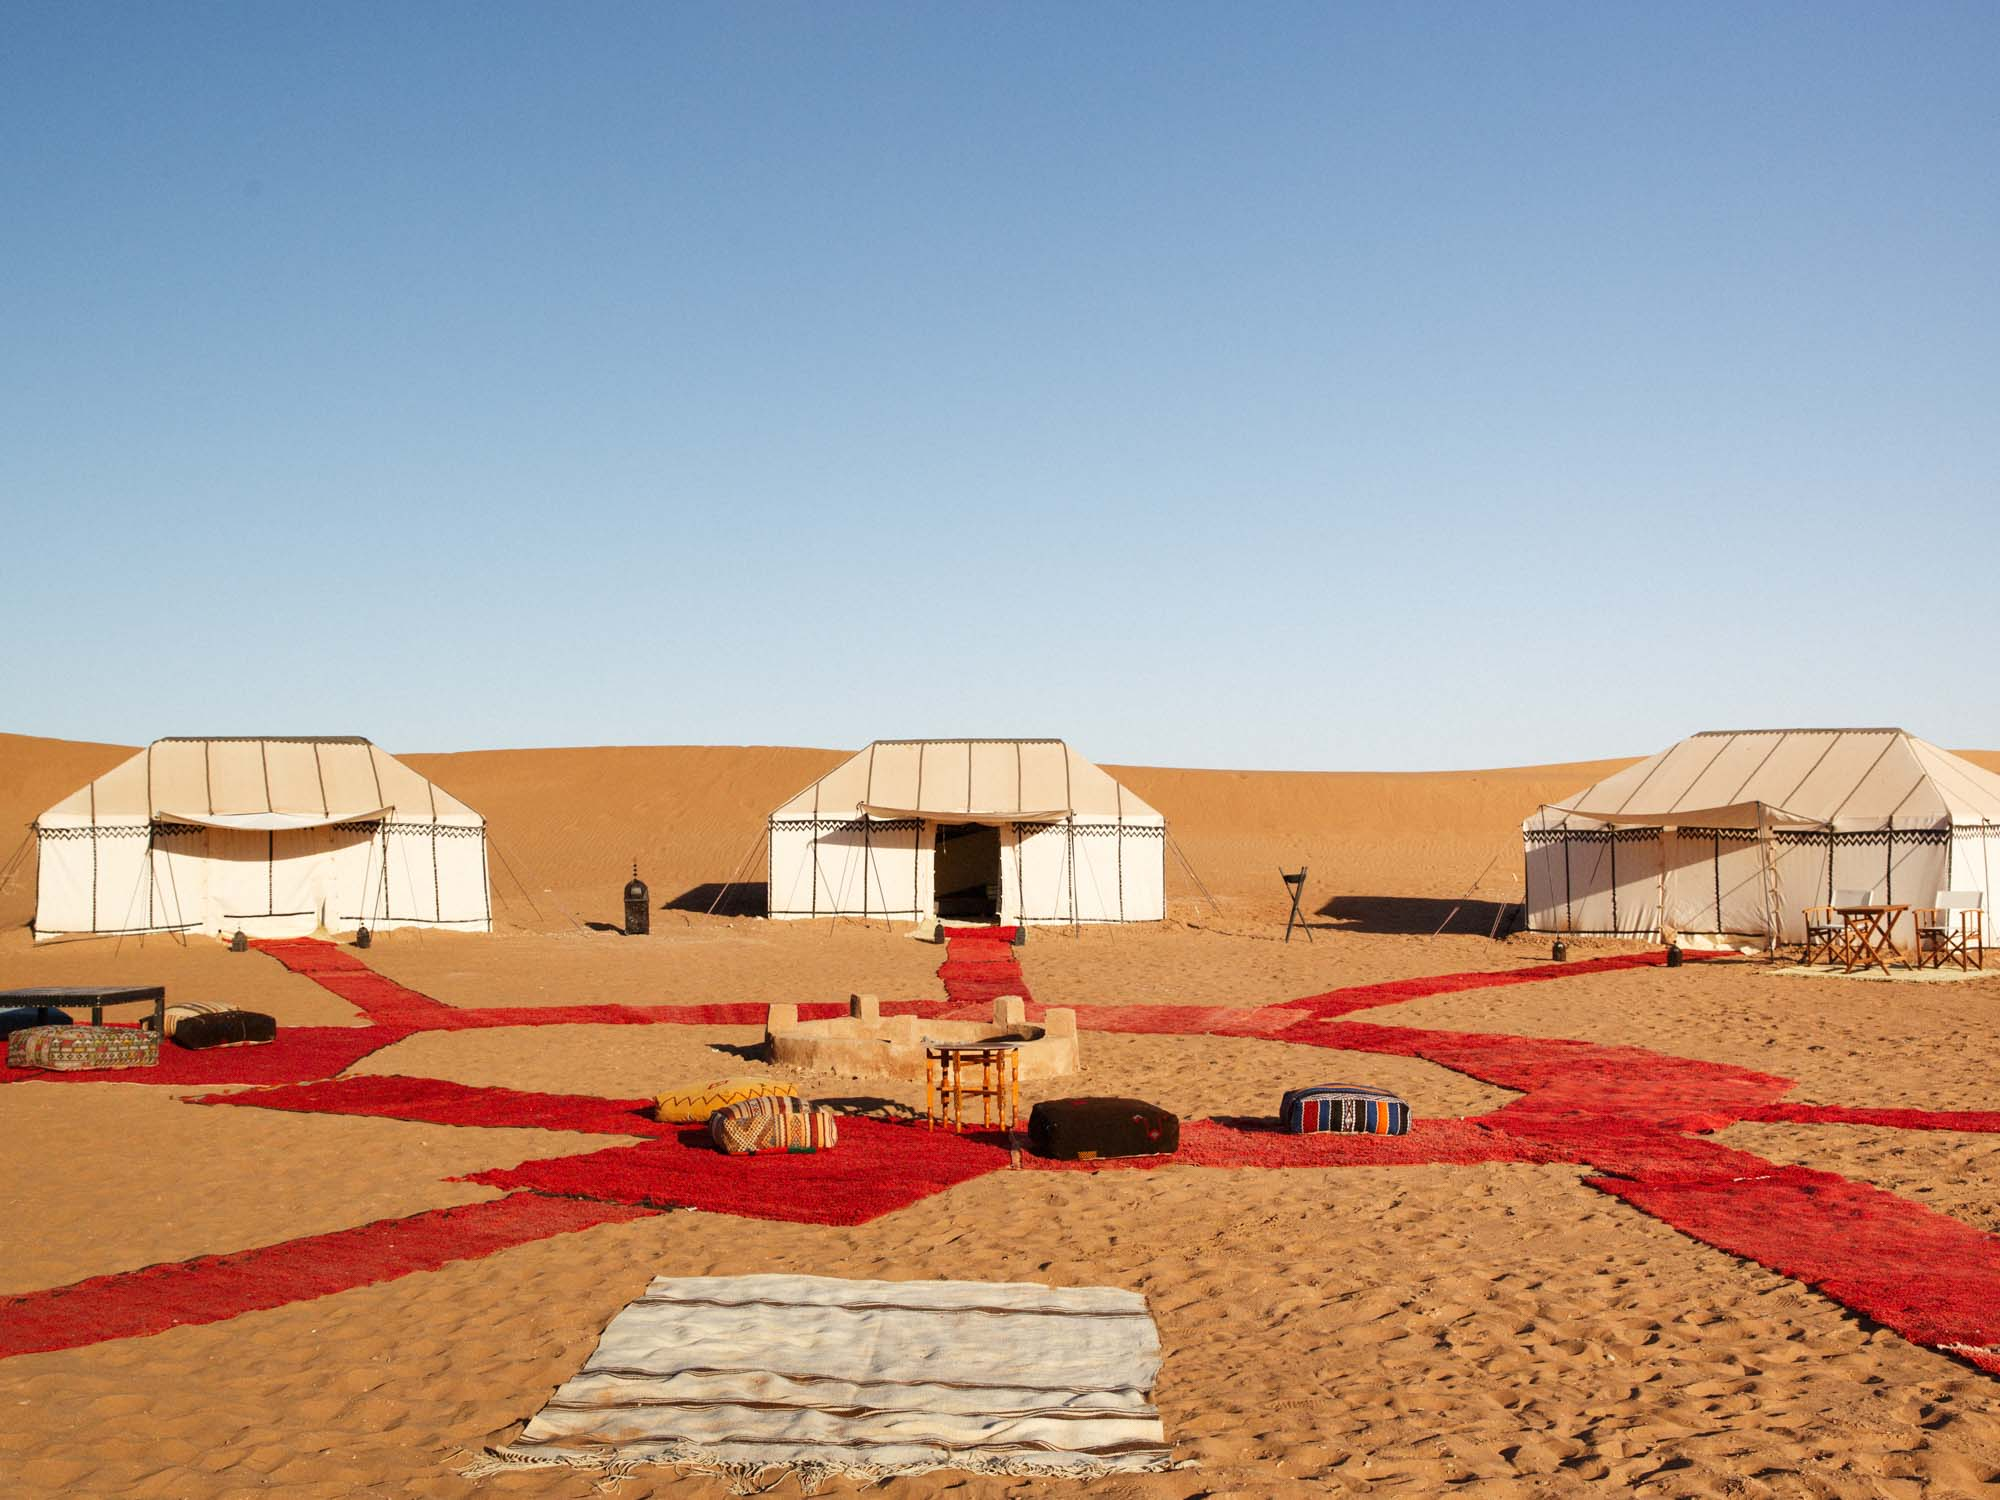 Red Carpets Around the Firepit in Sahara Desert at Nubia Camp Morocco